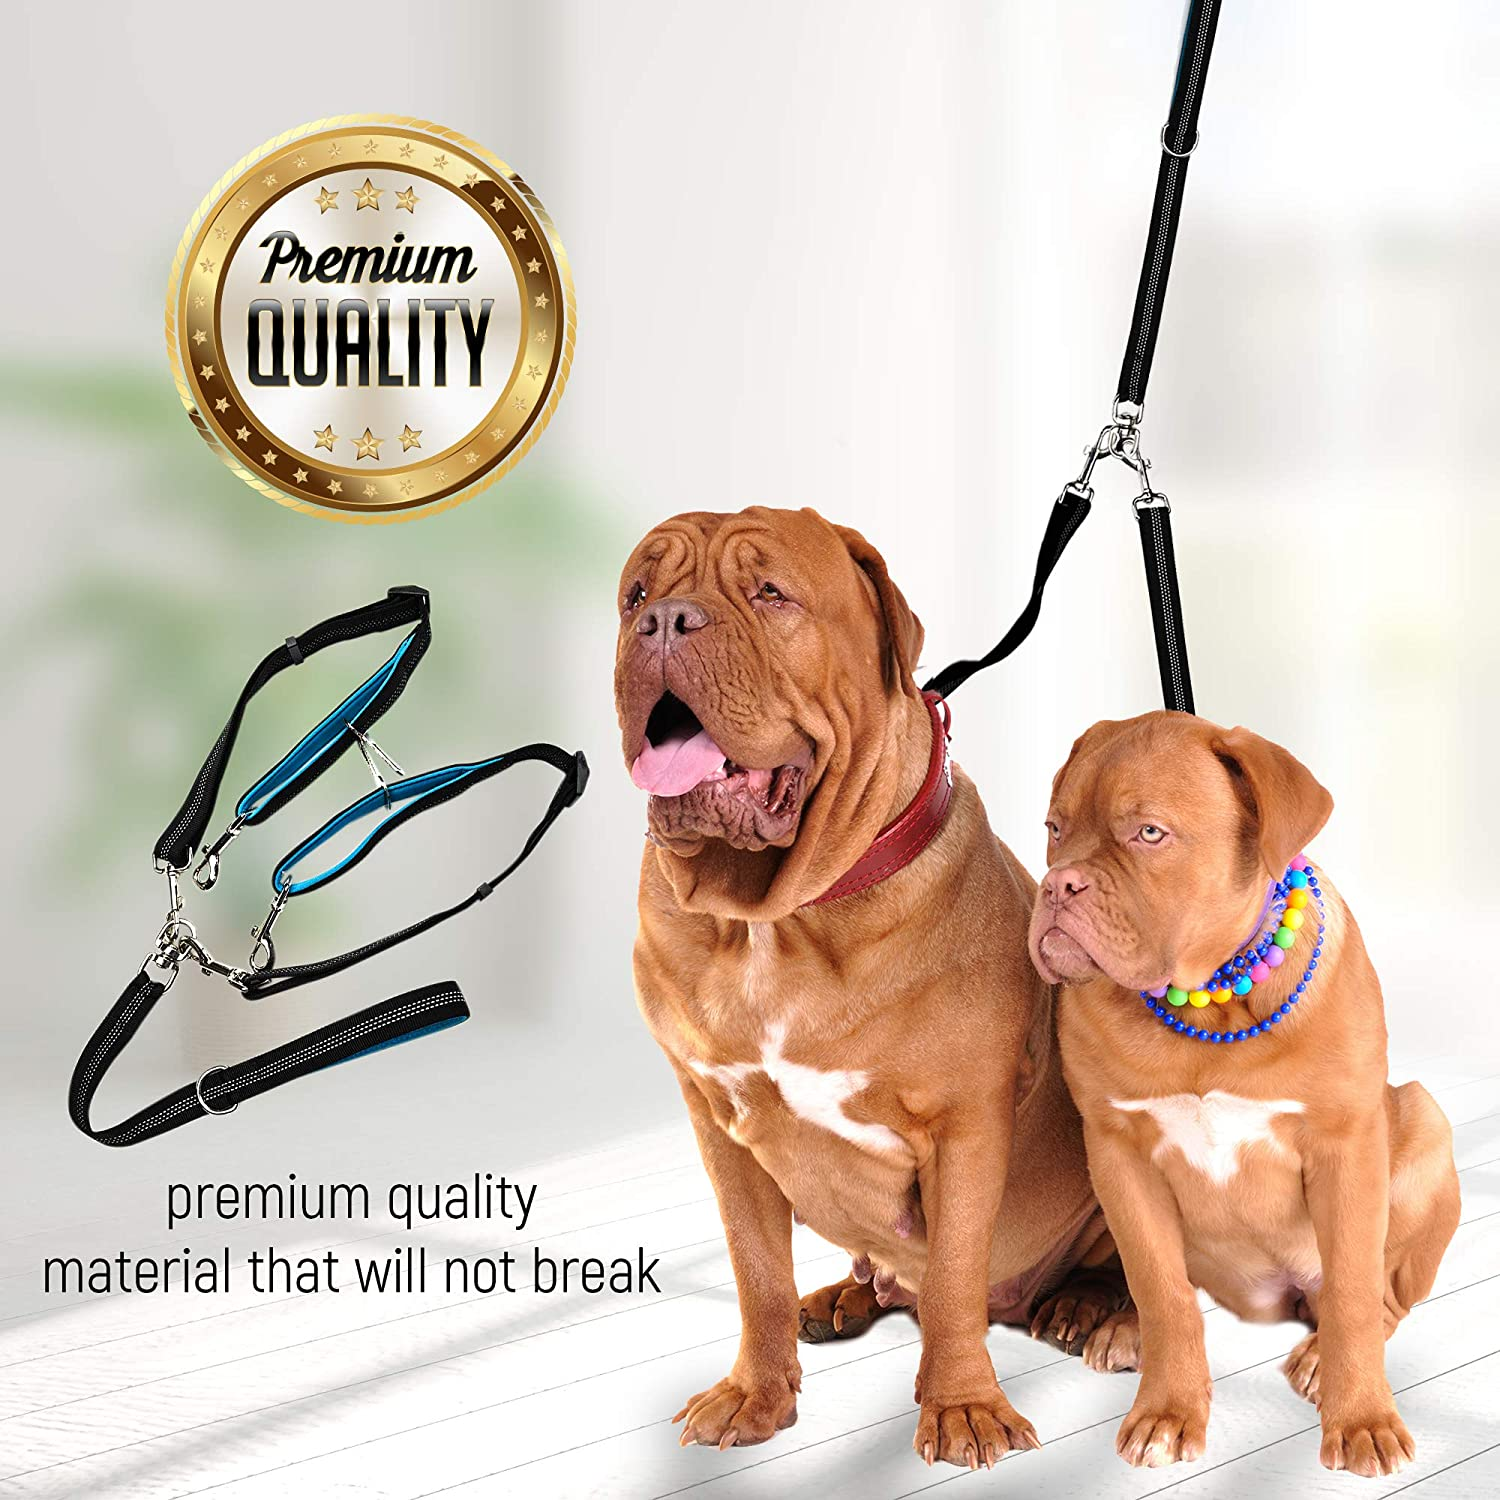 Amazon.com : 2 Dog Leash Tangle-Free Dual Dog Leash - Double Leash for Big and Small Dogs - Neoprene Padded Handles for Extra Comfort - Seatbelt Hooks ...